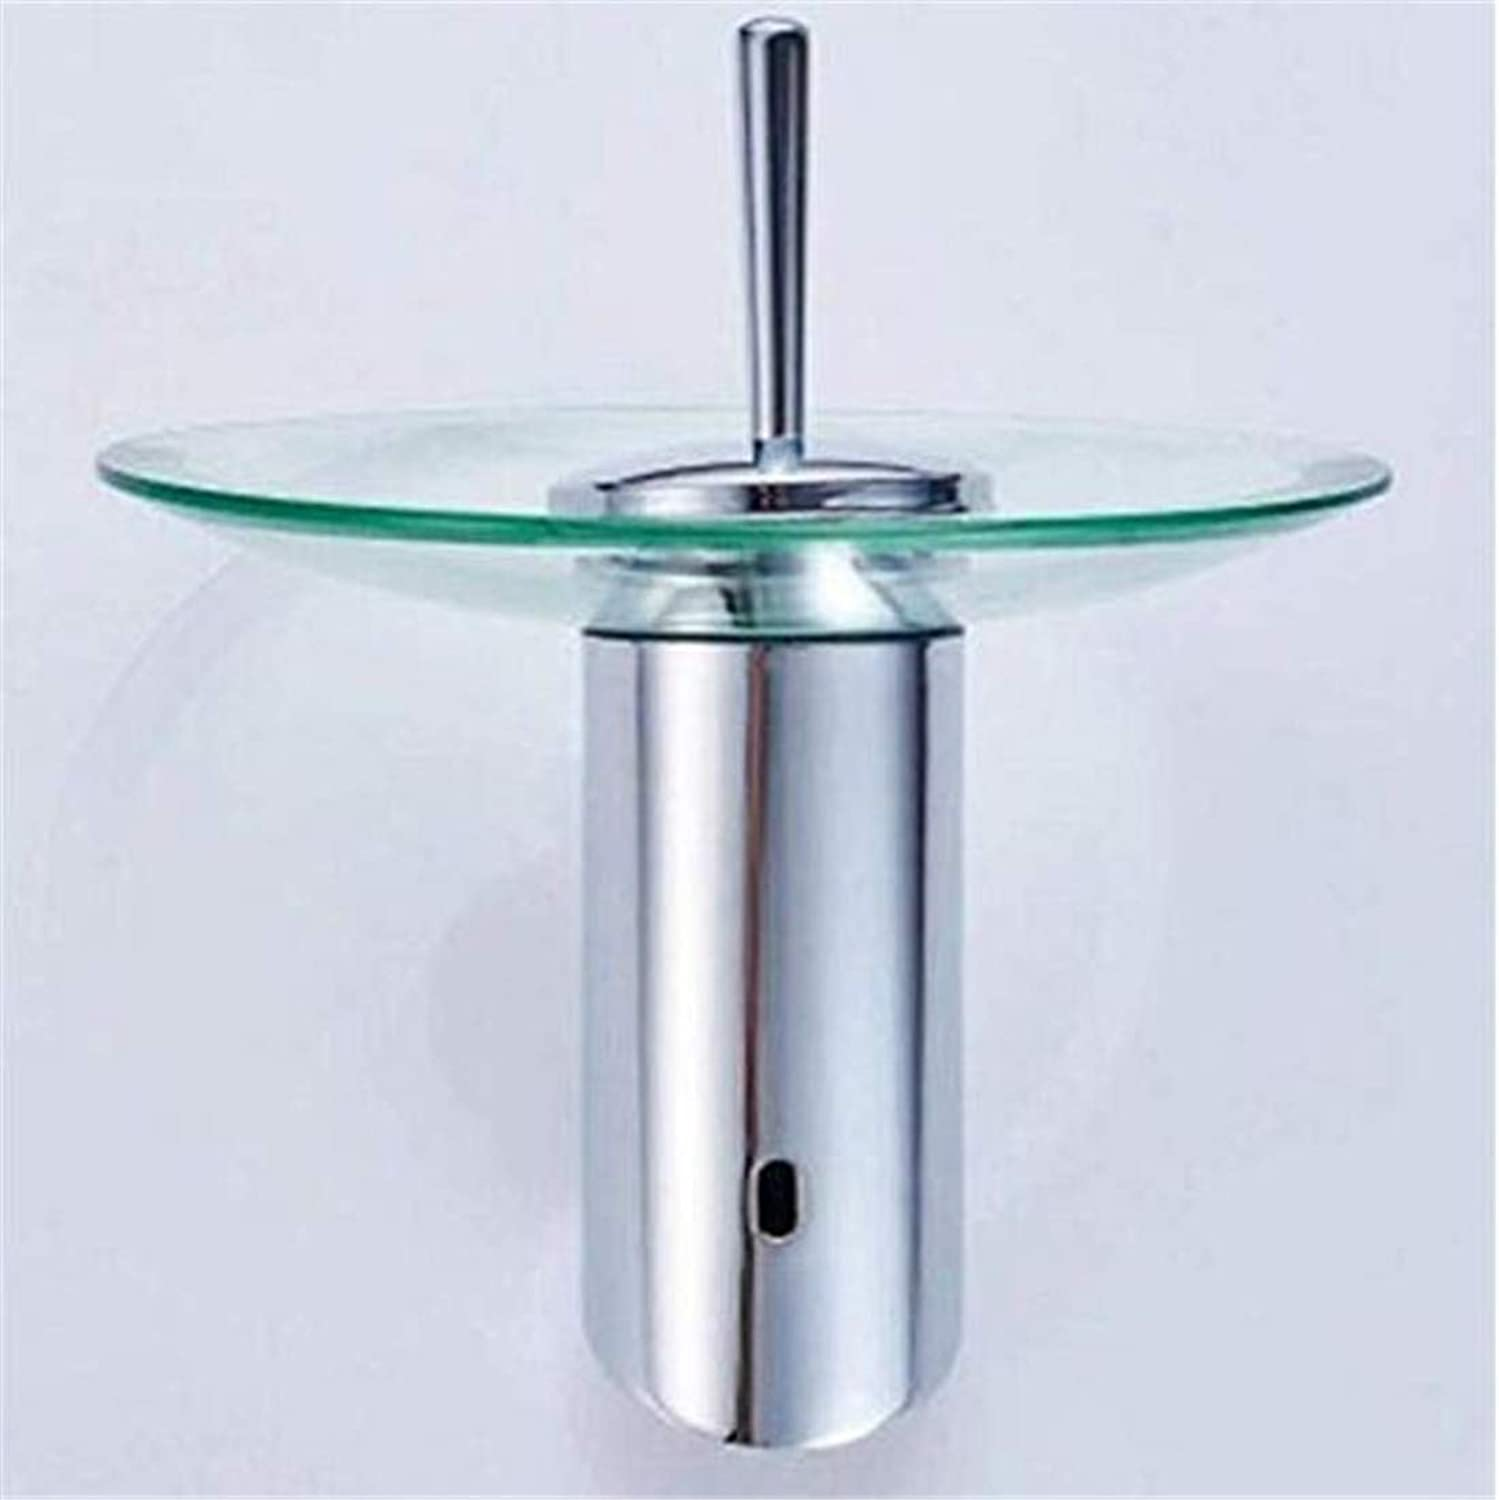 Modern Hot and Cold Vintage Platingfaucets Basin Mixer Waterfall Spout Chrome Finish Bathroom Faucets